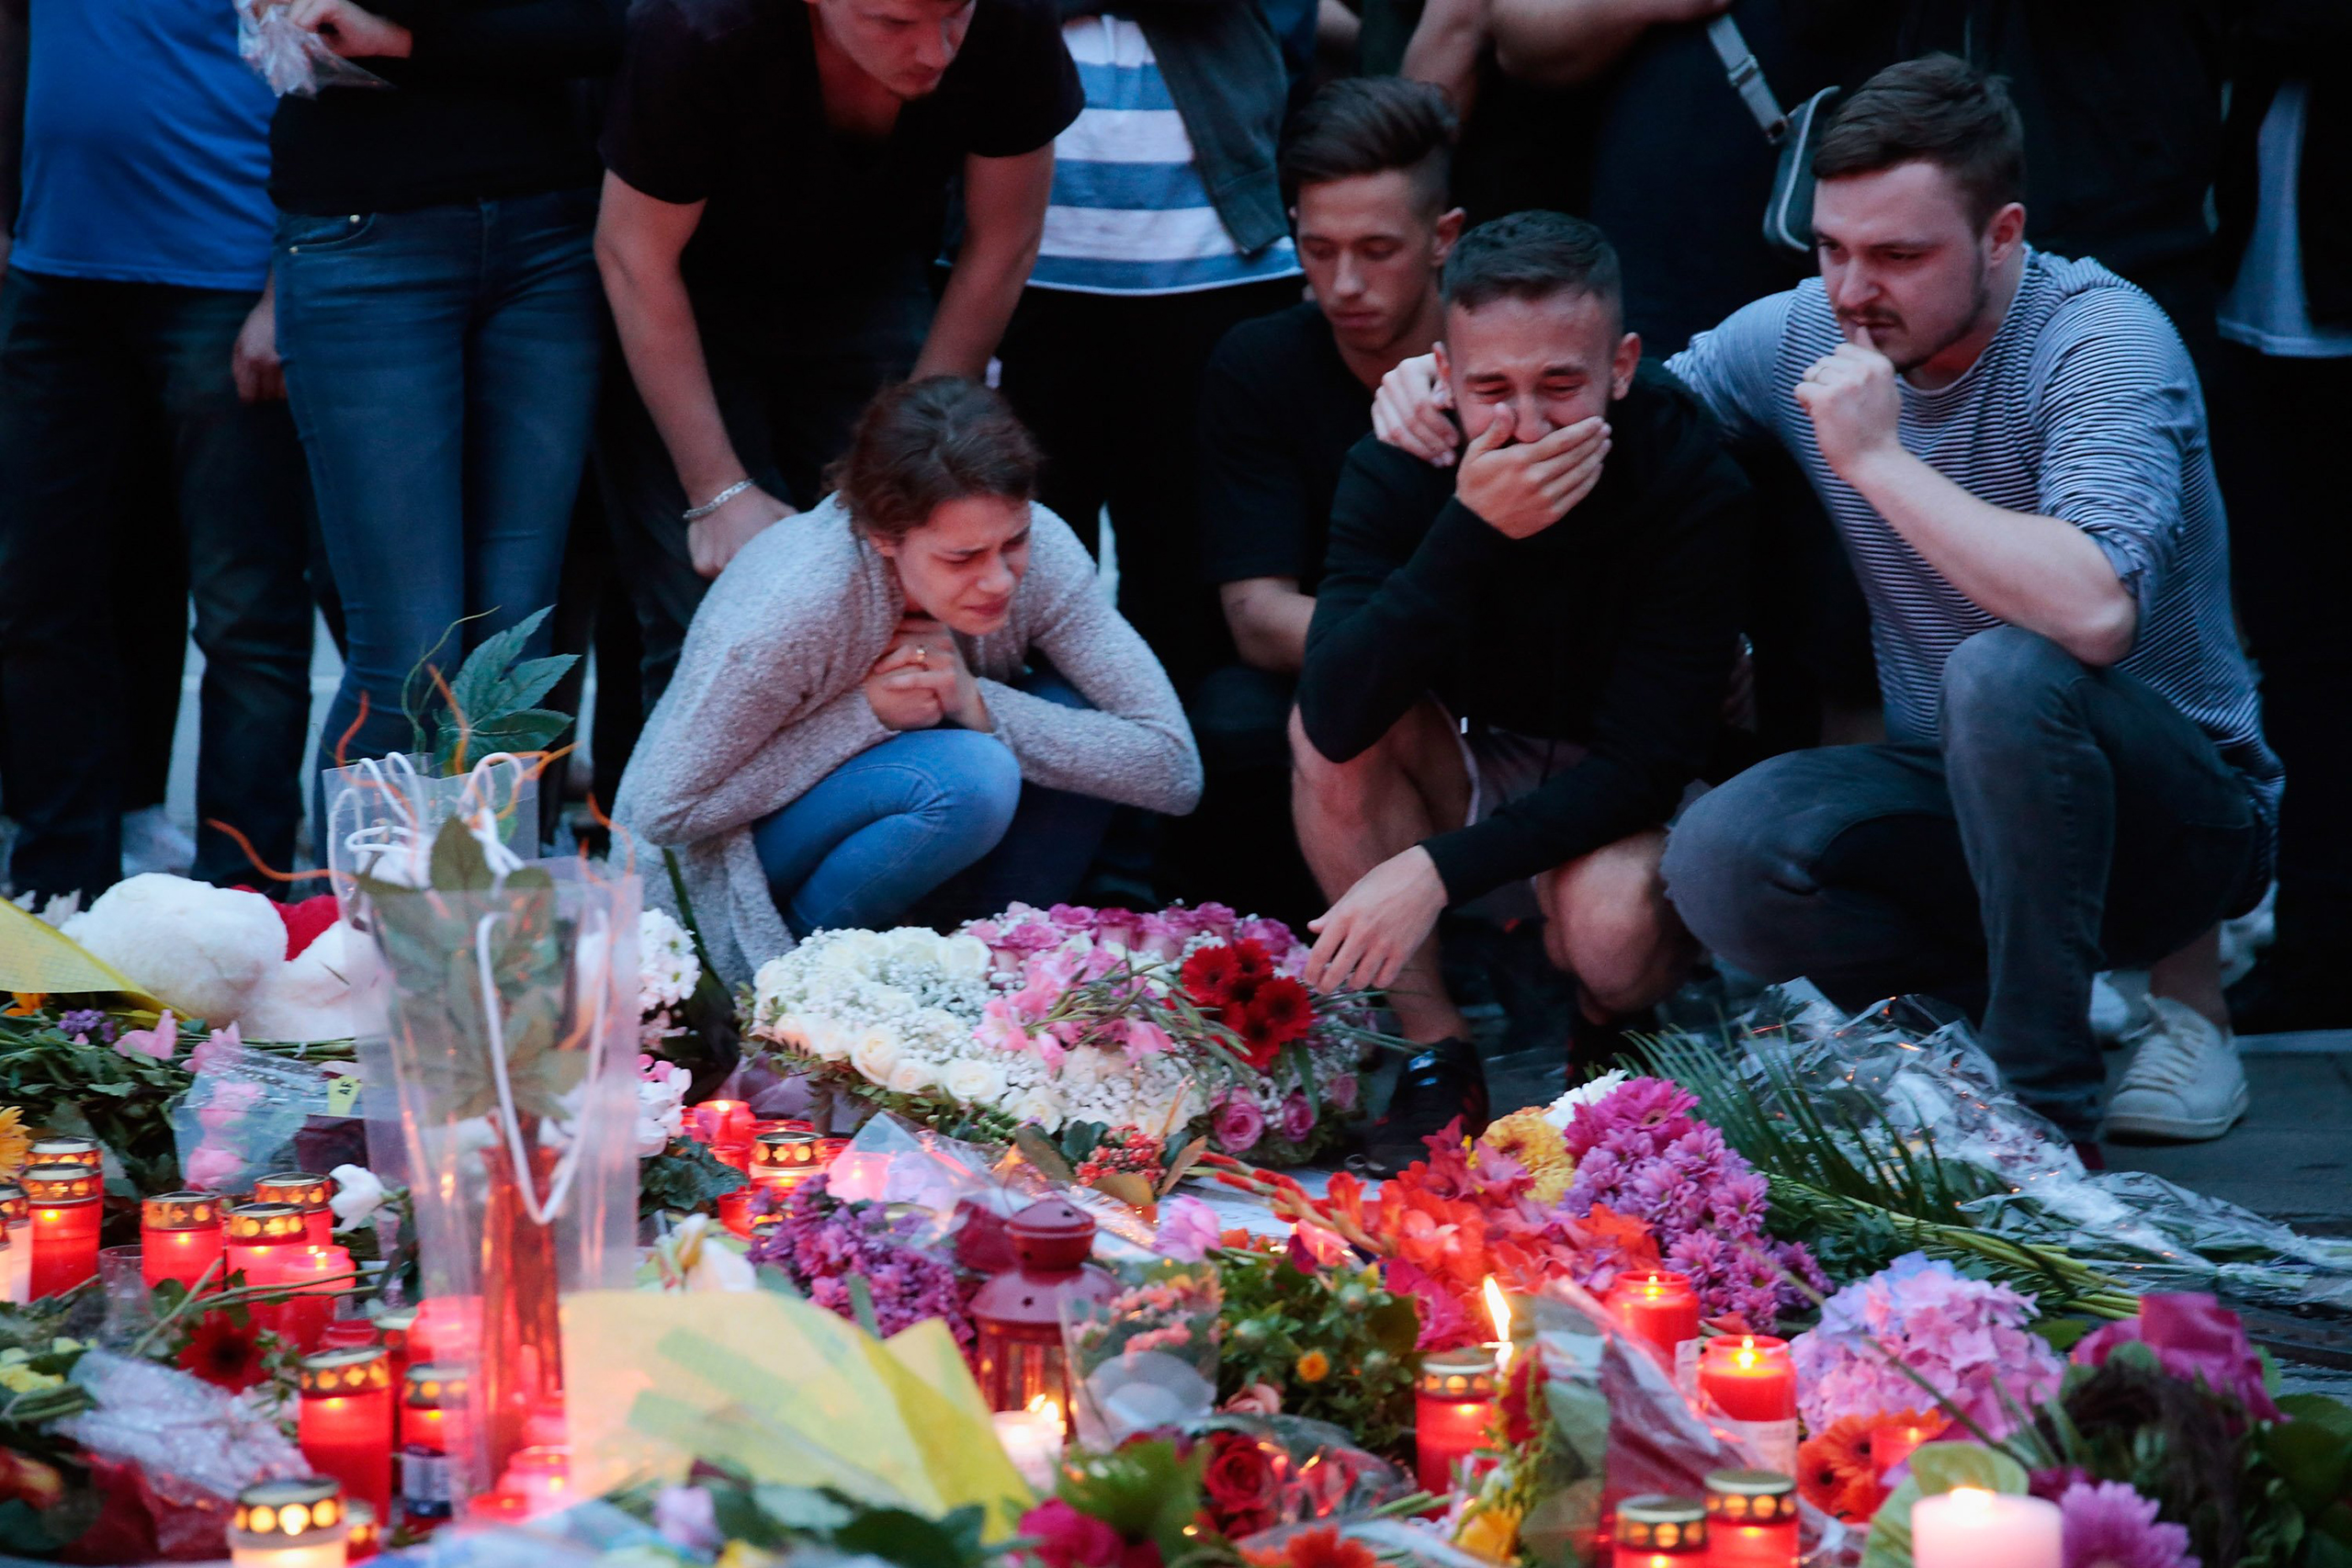 People mourn near the crime scene at OEZ shopping center the day after a shooting spree left nine victims dead in Munich, Germany, on July 23, 2016.